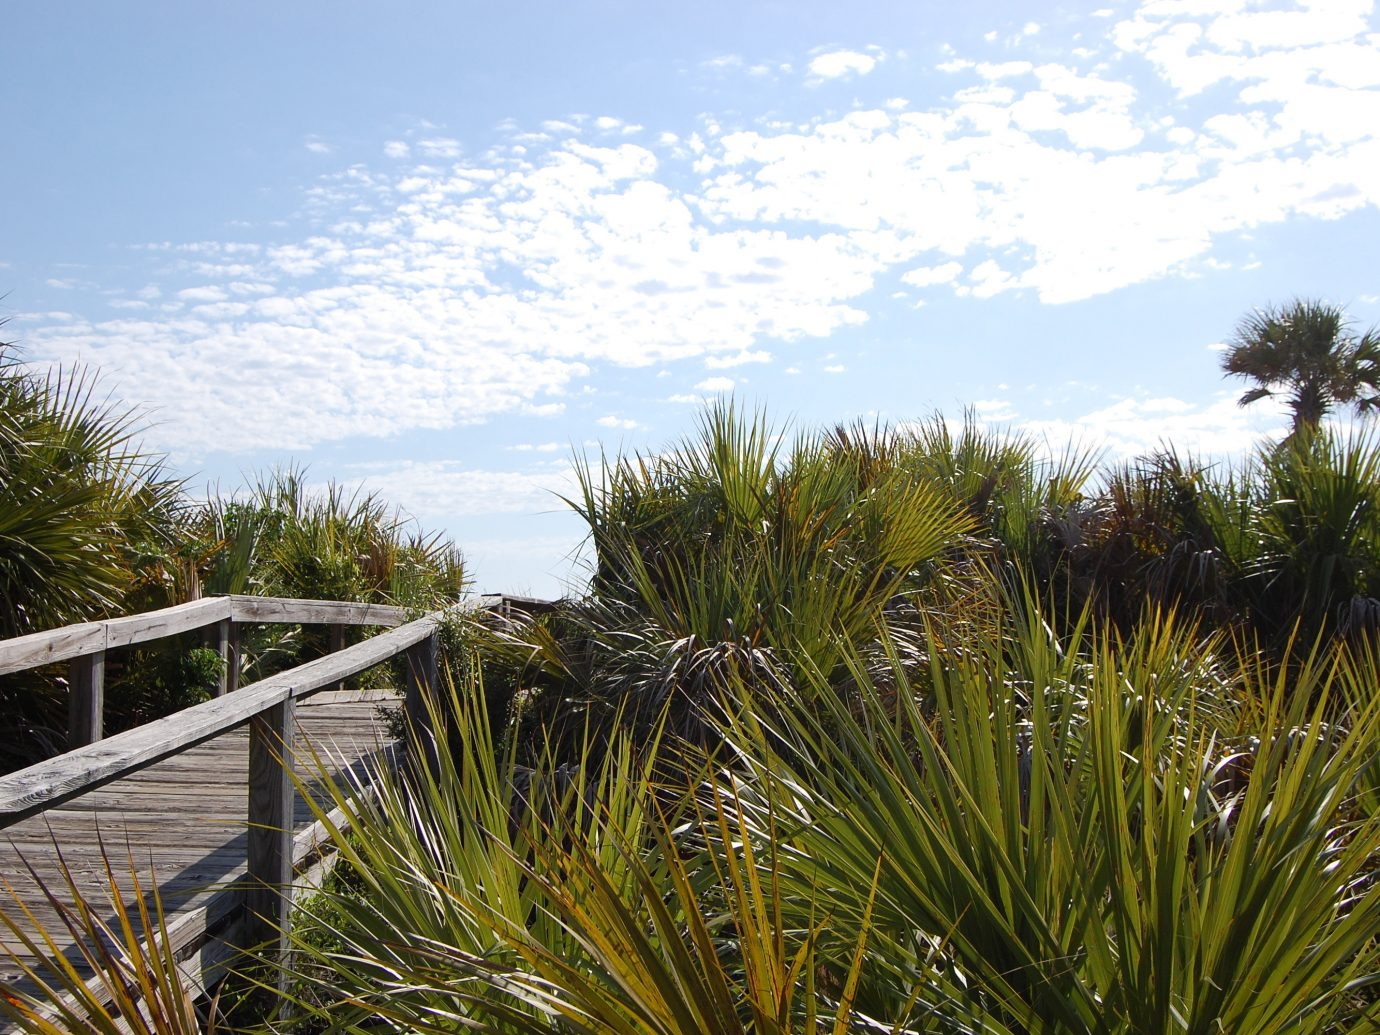 Beach East Coast USA Trip Ideas tree outdoor sky habitat Nature natural environment ecosystem flora grass botany plant arecales woody plant Coast grass family landscape palm family Sea Garden flower wetland